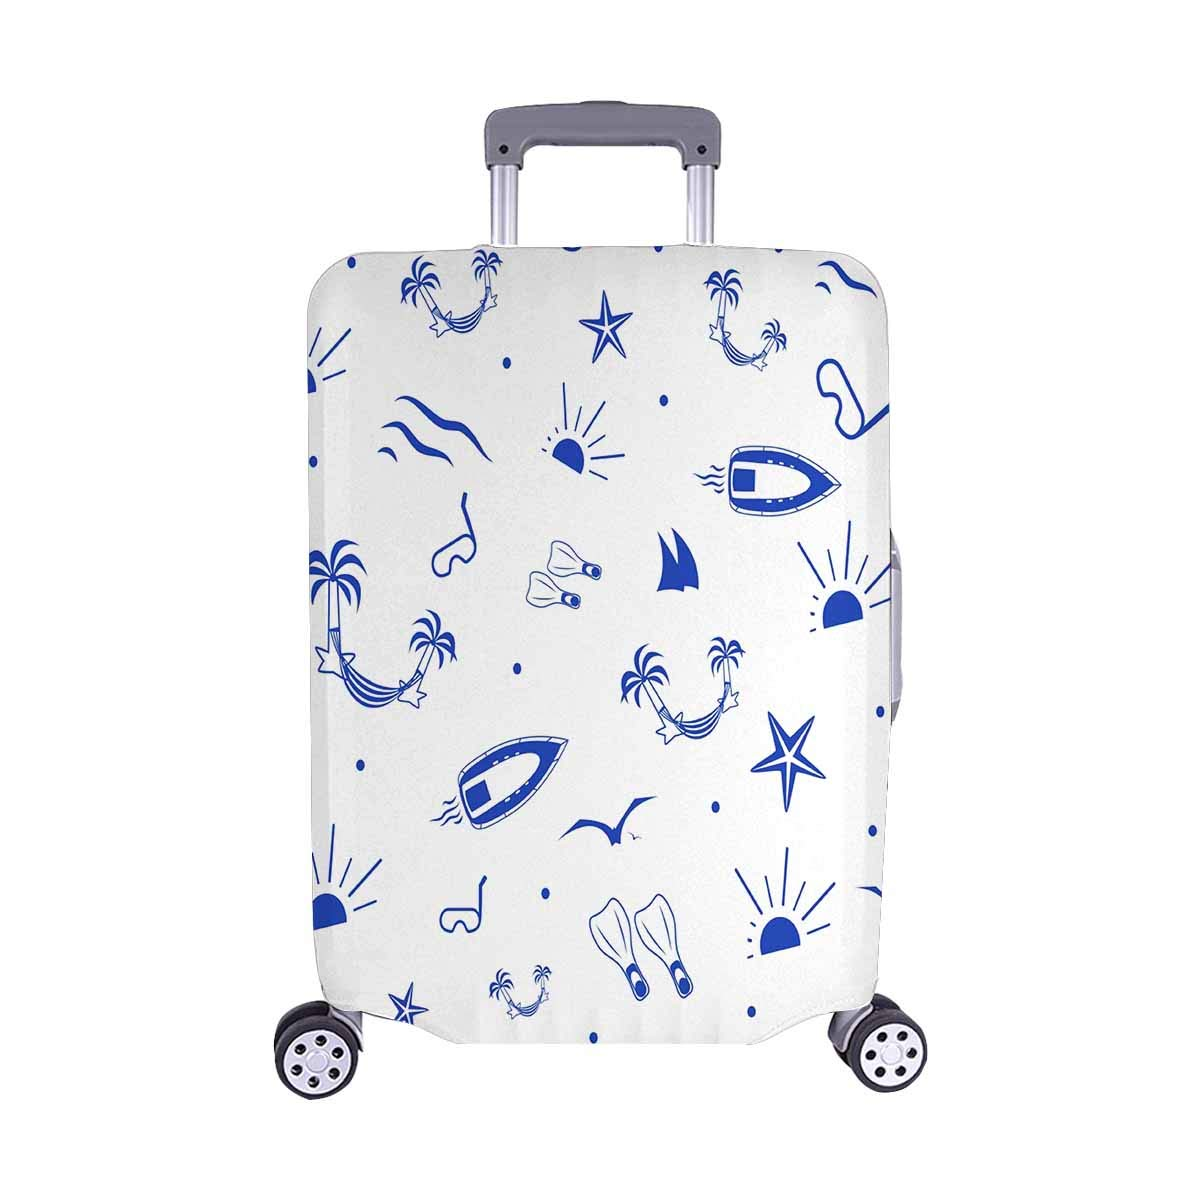 InterestPrint Luggage Protector Suitcase Cover Fit 22-25 Inch Luggage Summer Vacation, Travel, Sea Cruise